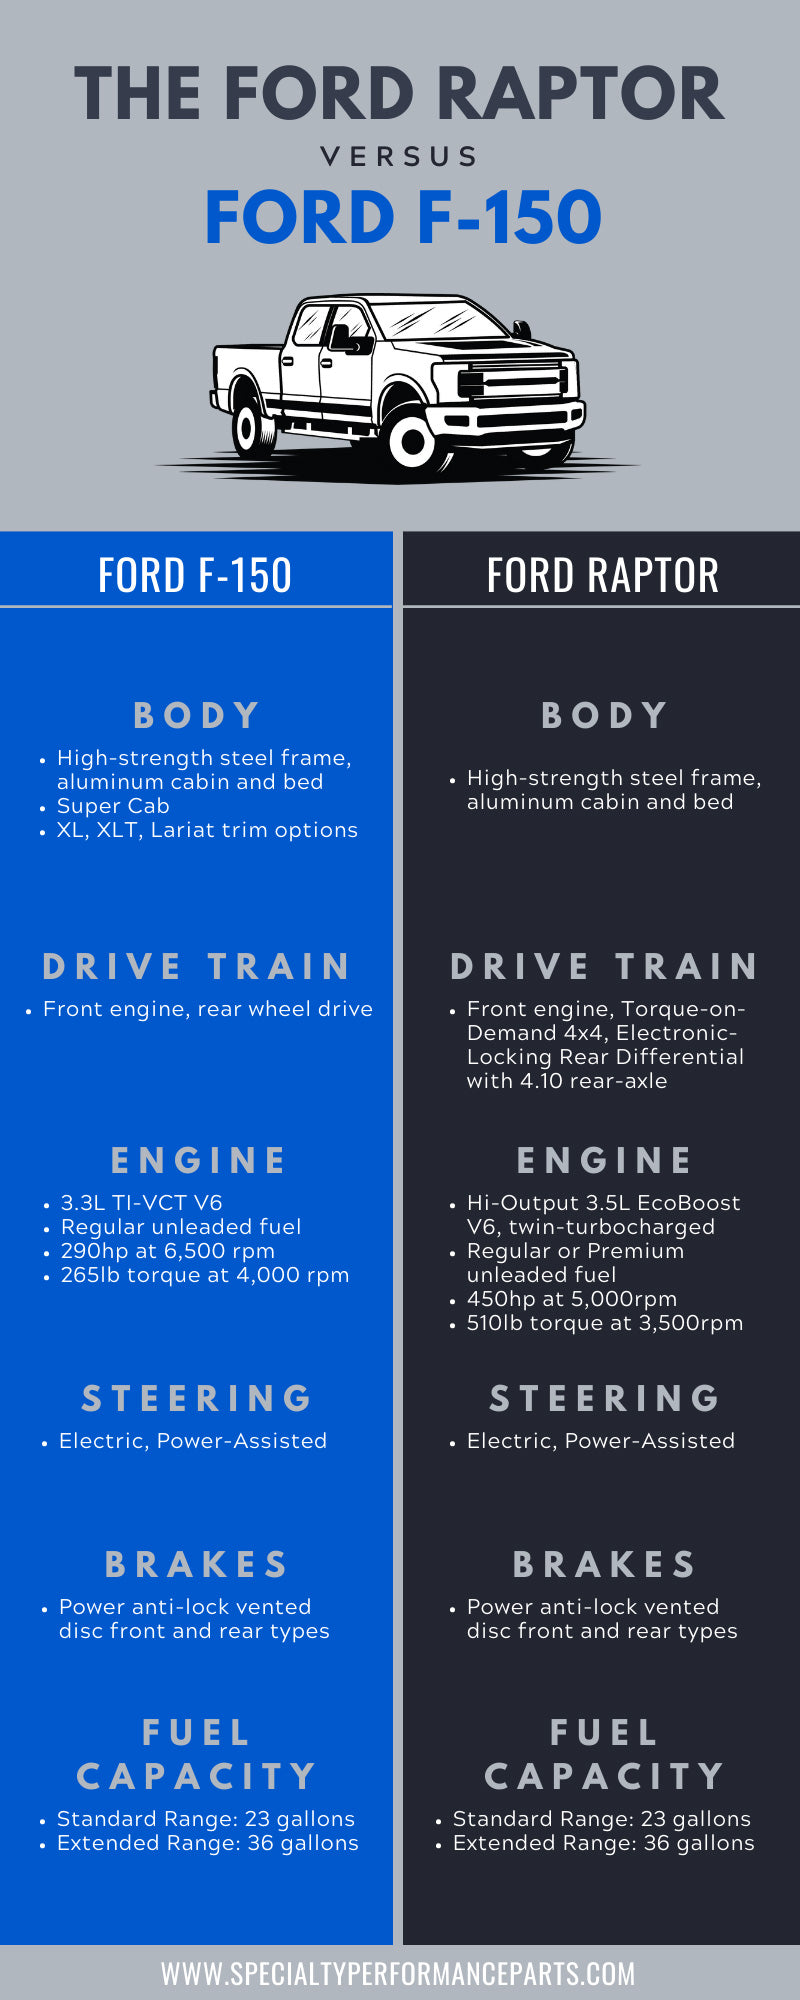 The Ford Raptor vs. Ford F-150 Info Graphic